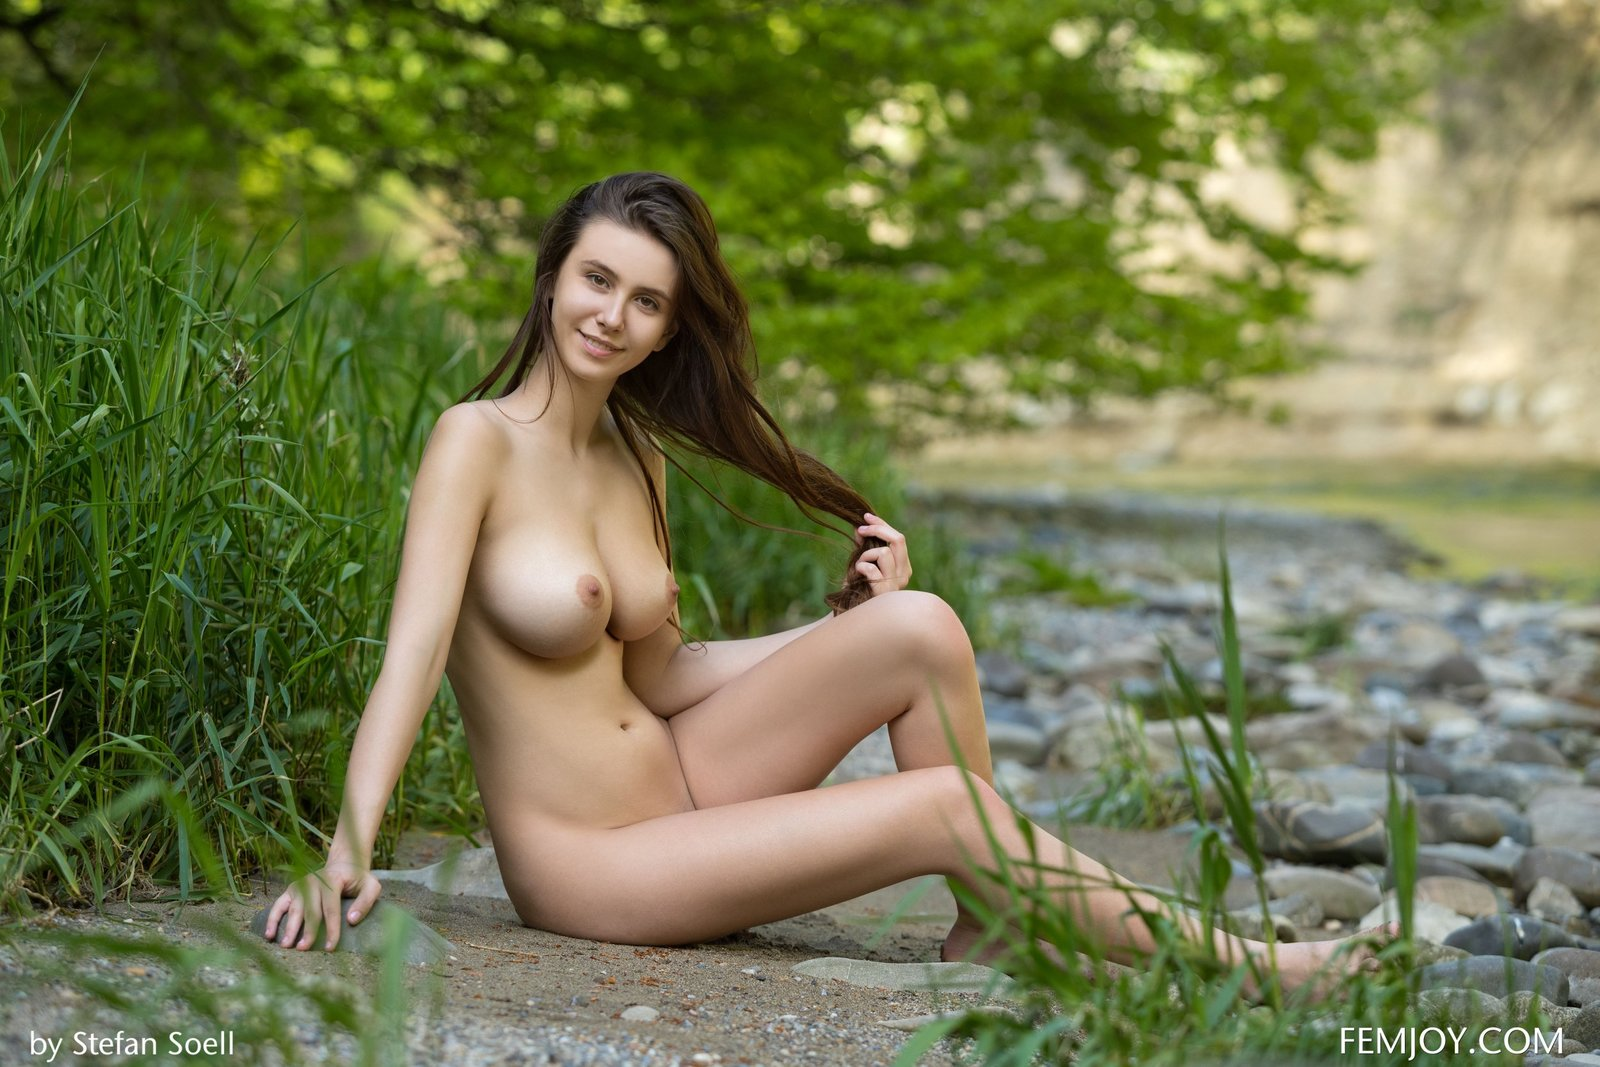 Suggest Free in nature nude share